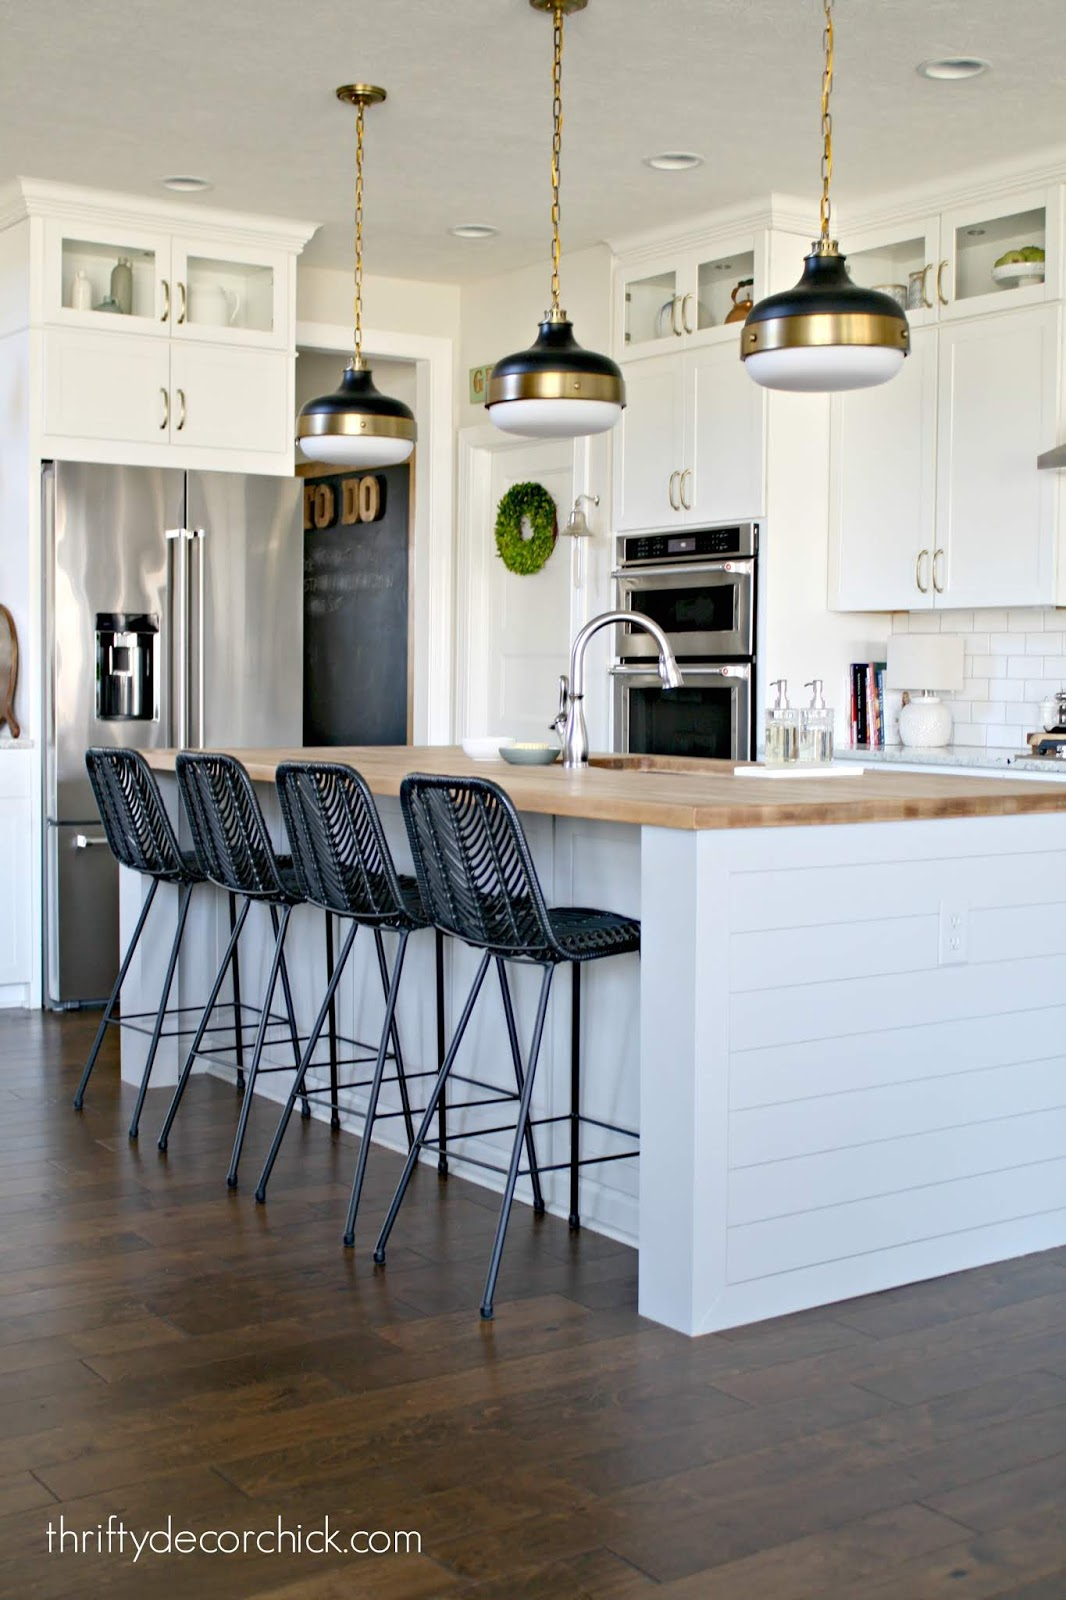 Customizing kitchen island with shiplap sides